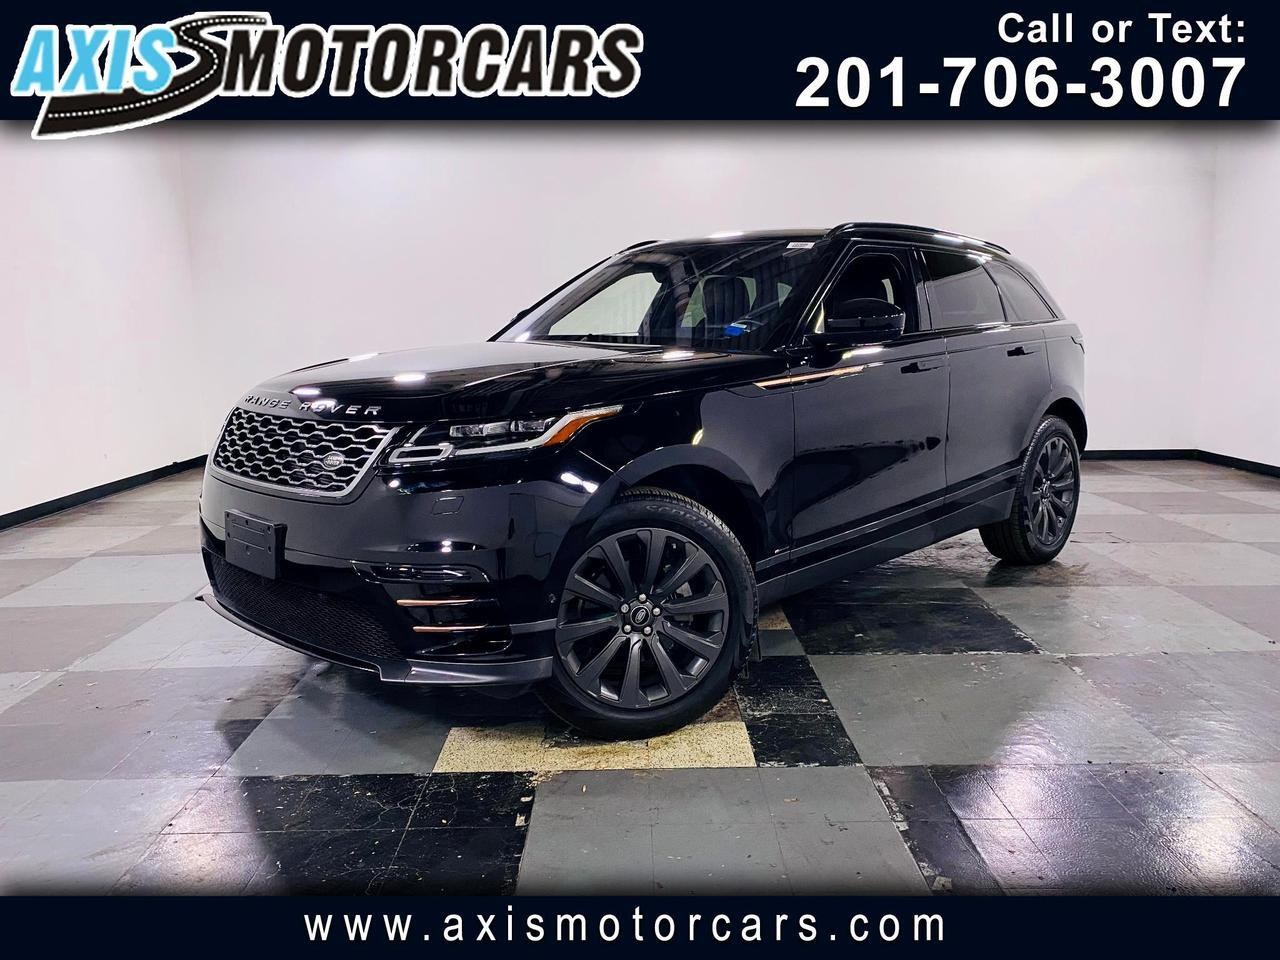 2018 Land Rover Range Rover Velar P250 SE R-Dynamic w/Backup Camera Meridian Sound Jersey City NJ